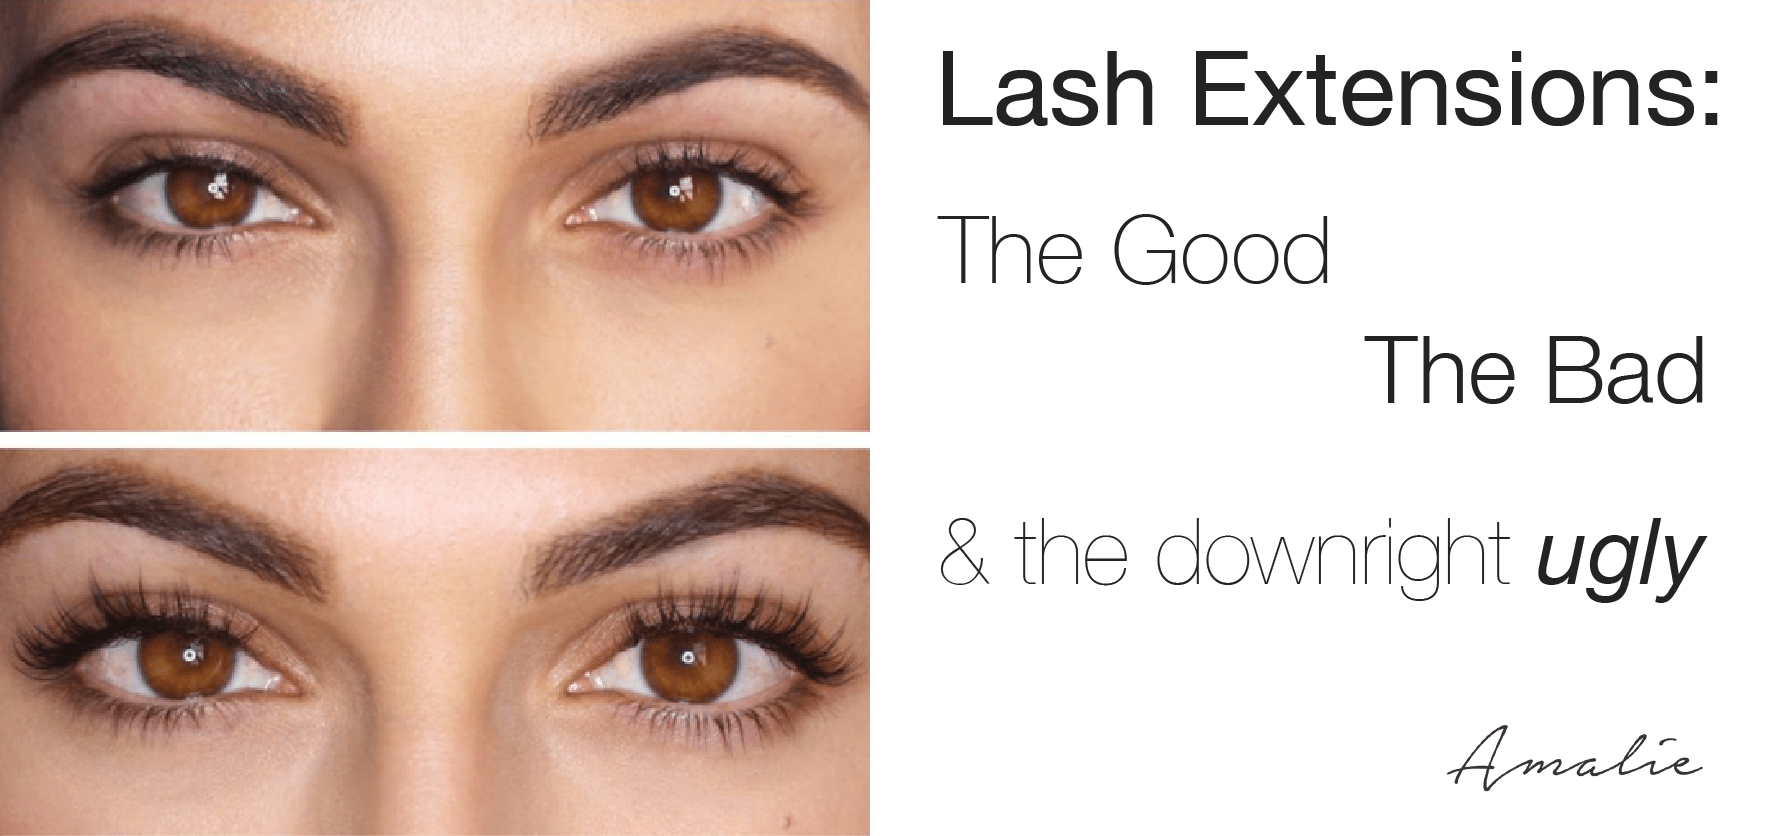 Im Never Getting Lash Extensions Again Thanks to This Genius At-Home Product